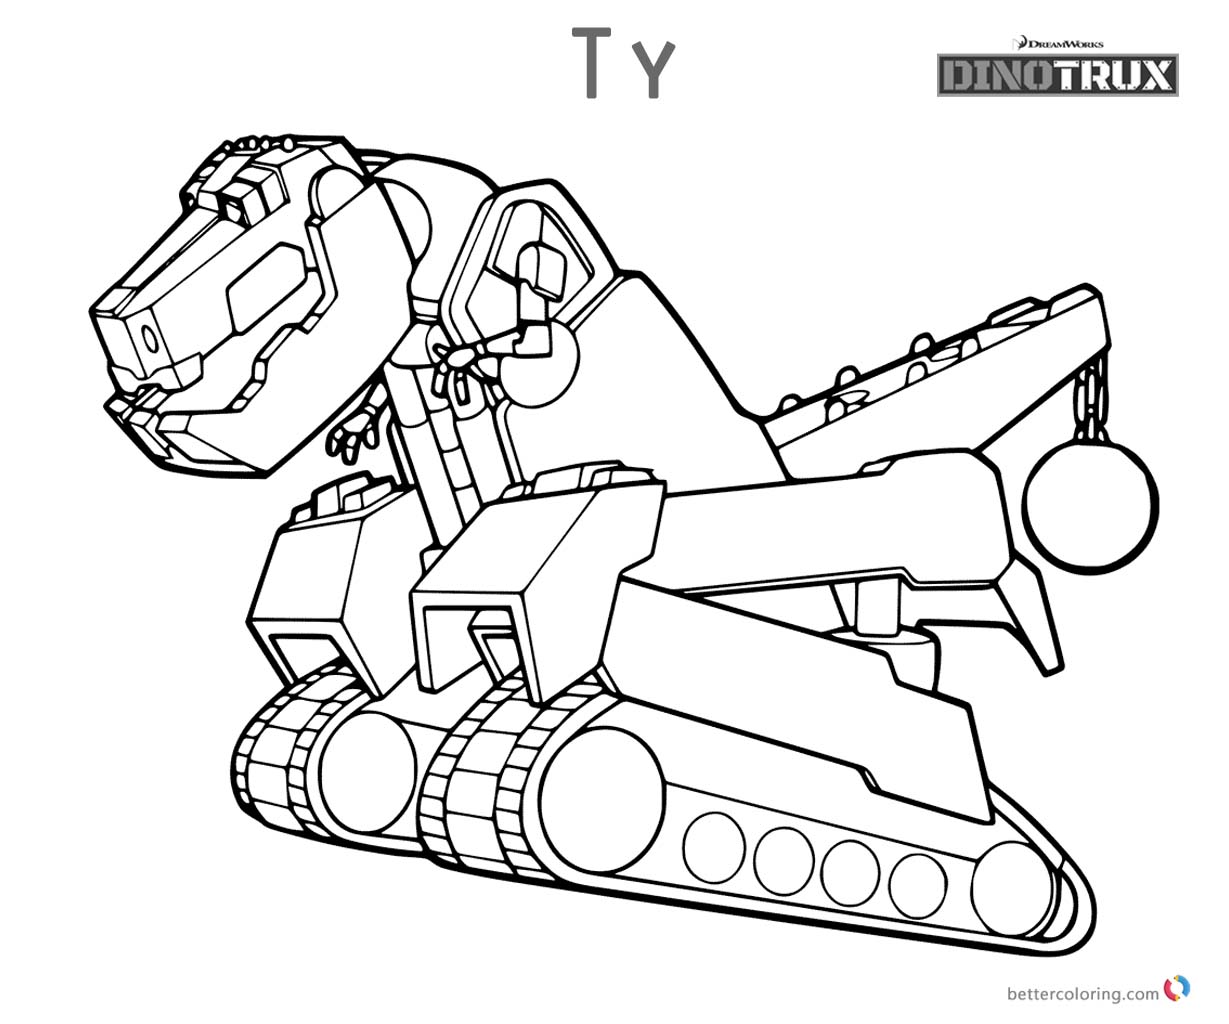 Dinotrux coloring pages Ty running printable